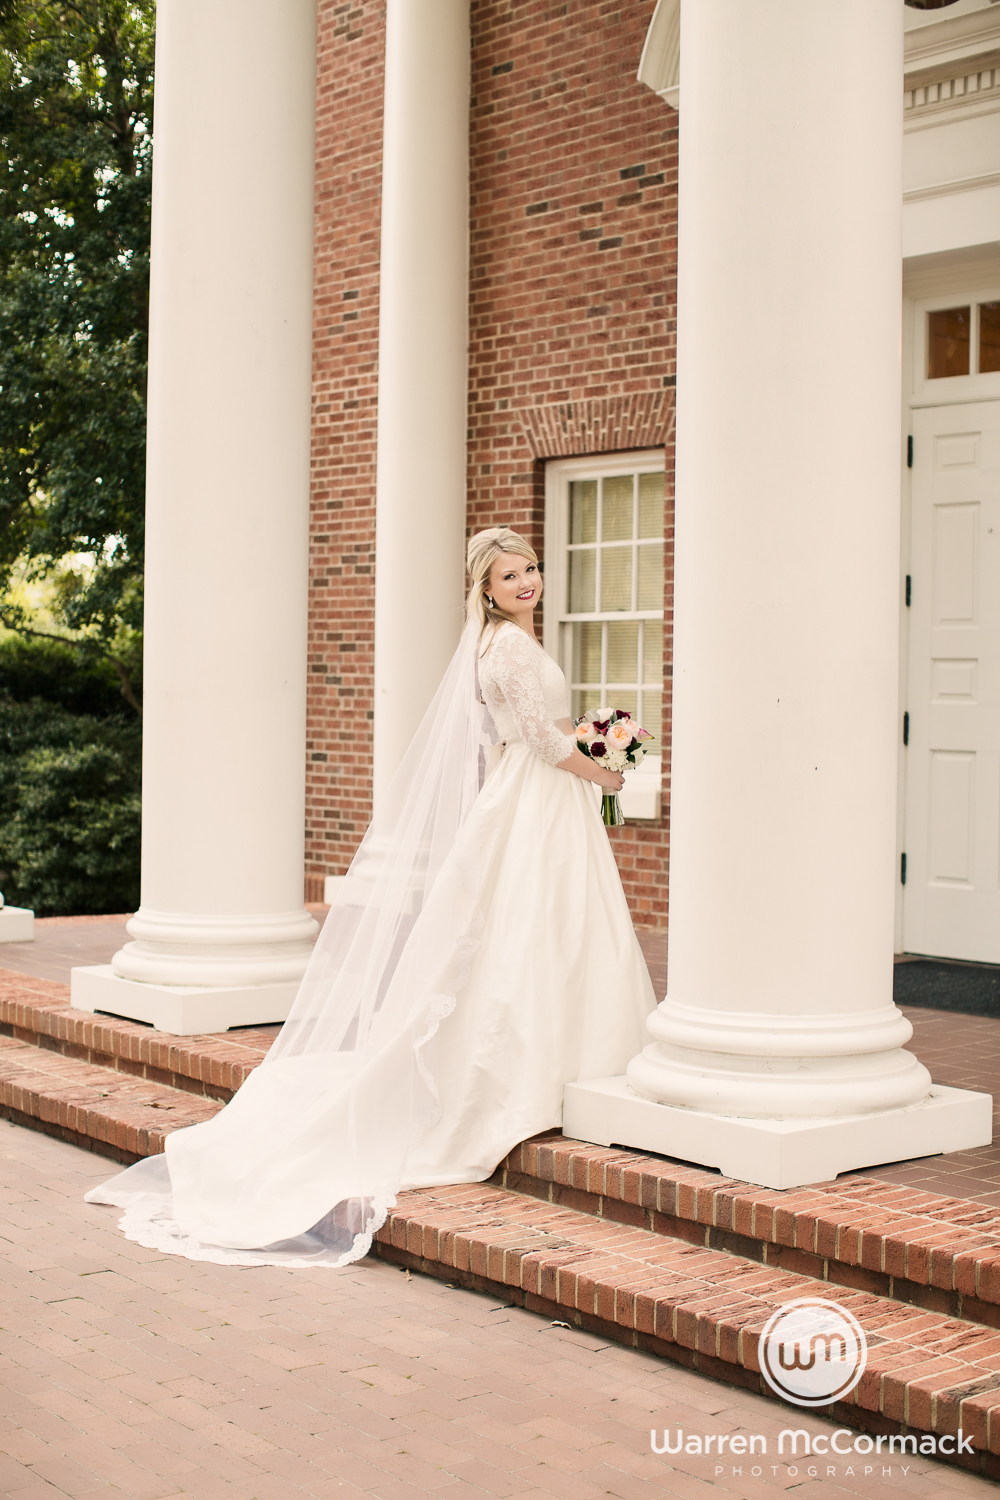 Raleigh-Wedding-Photographer-6.jpg